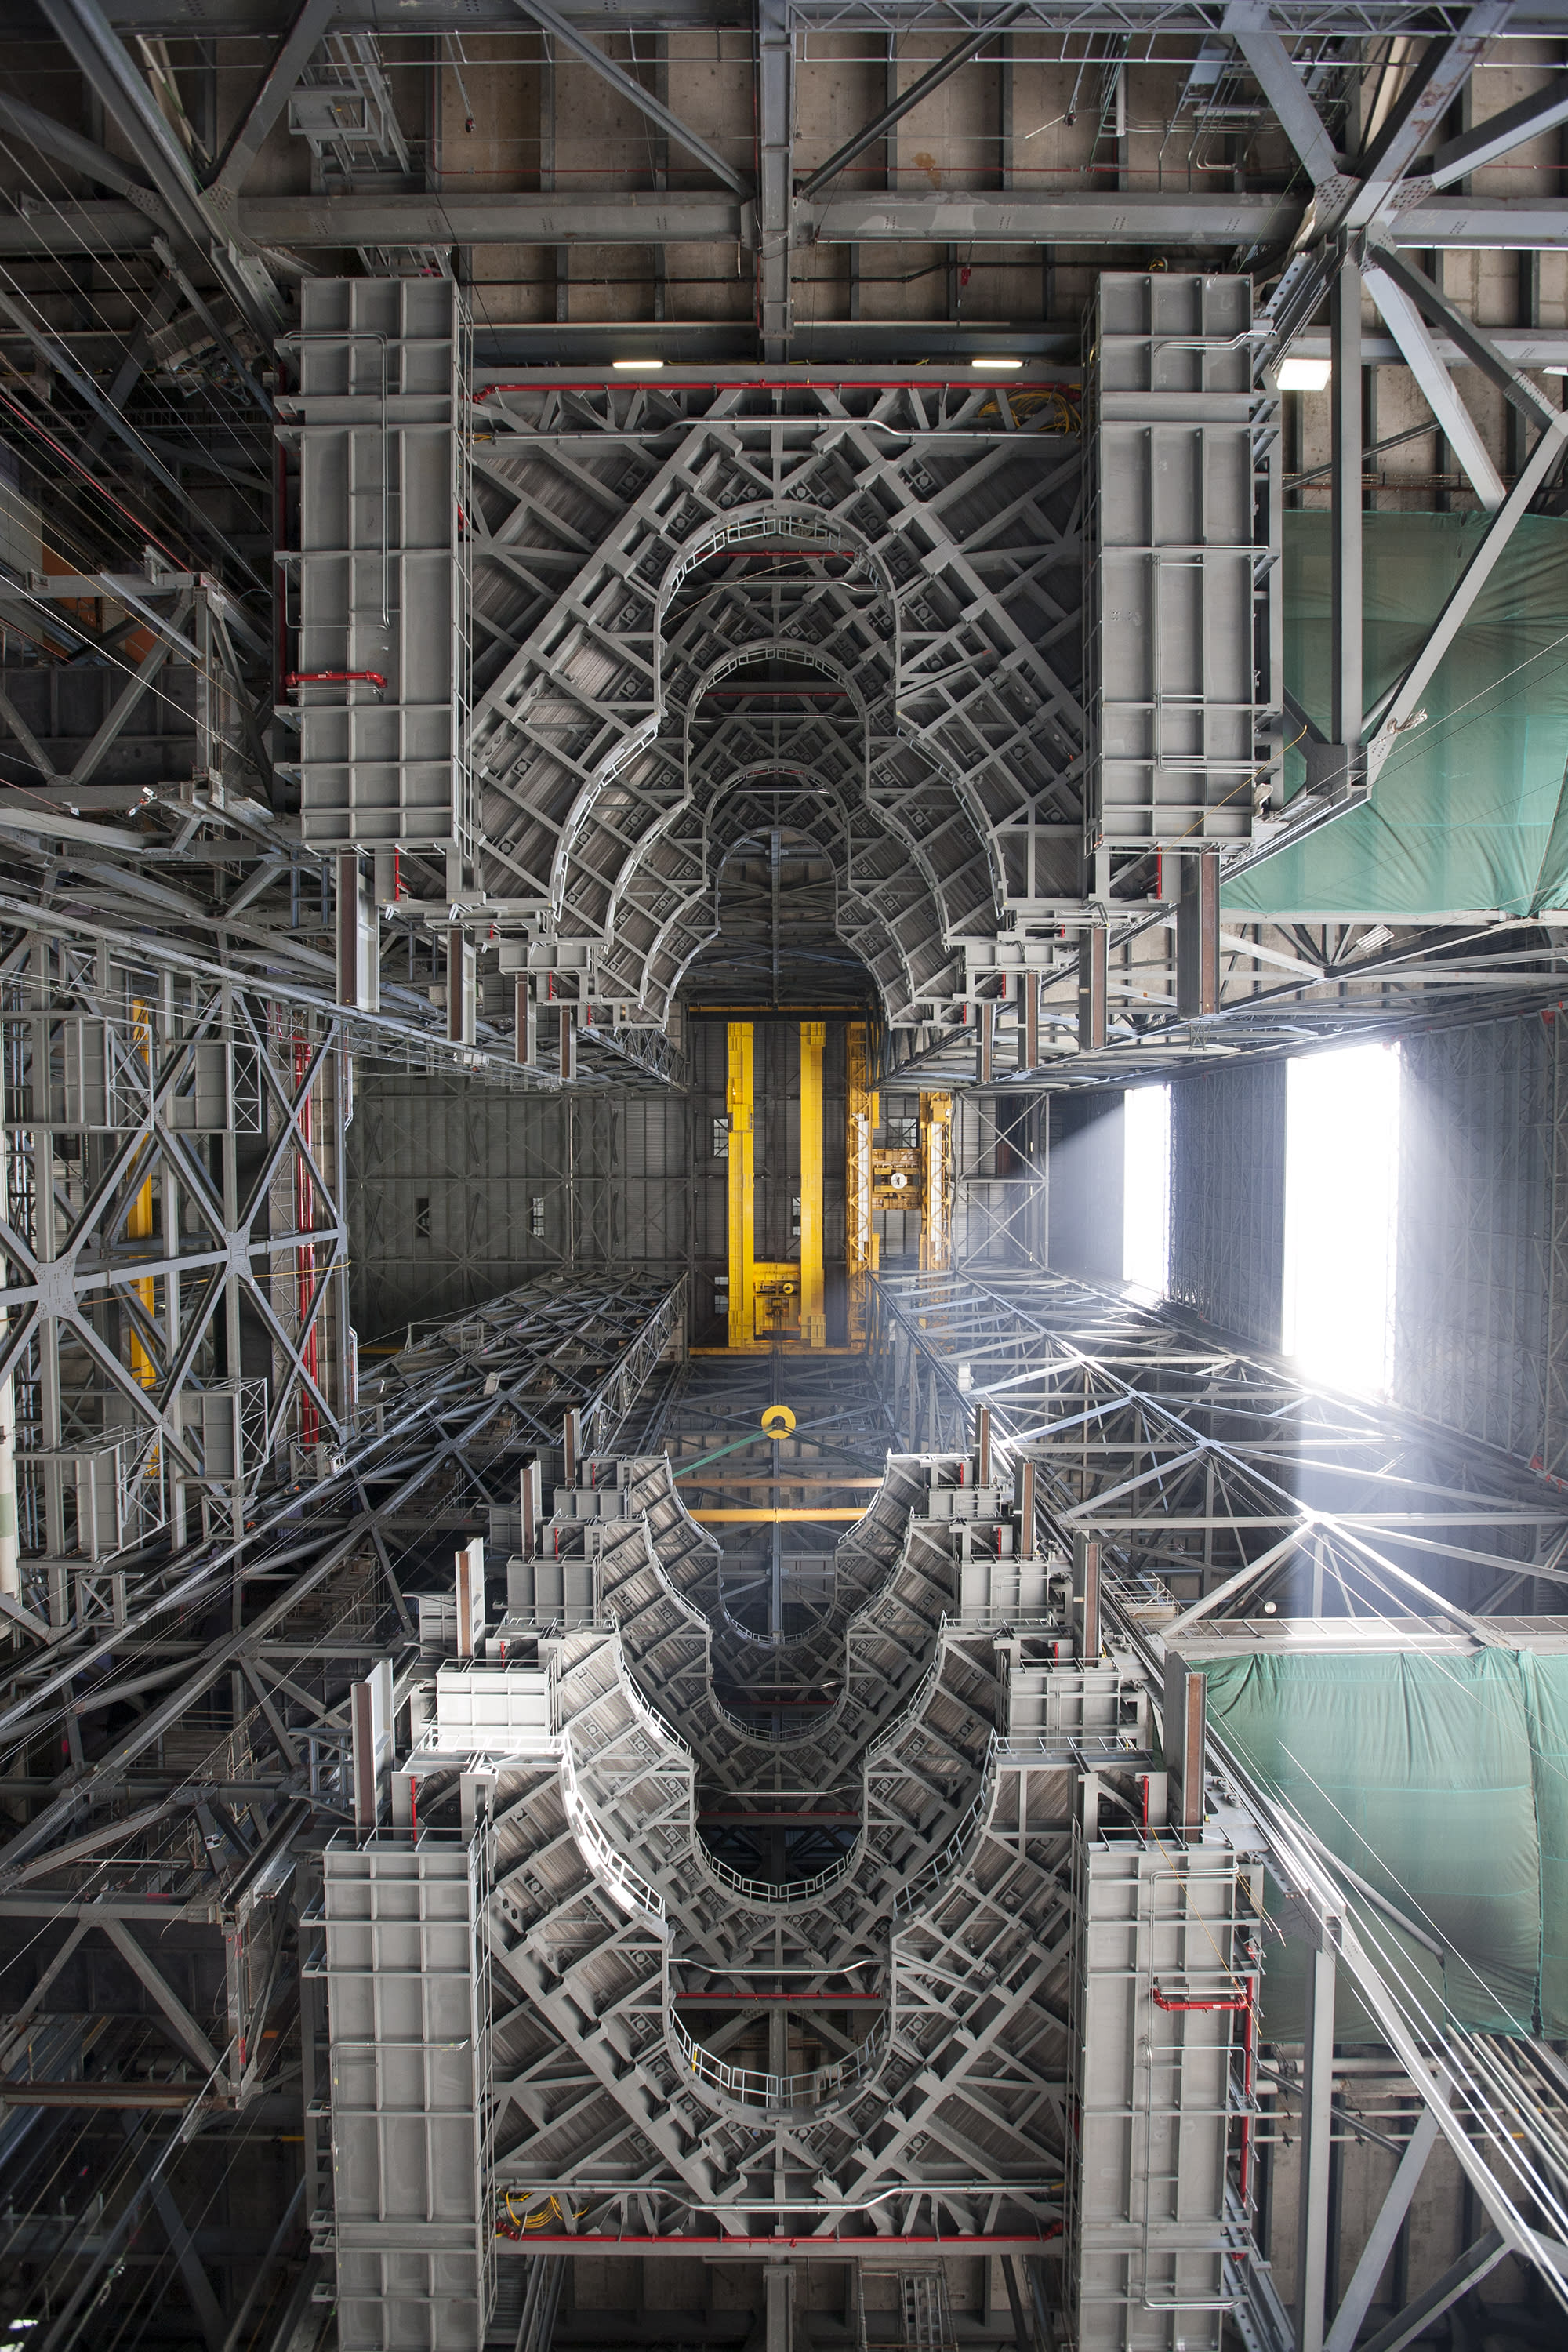 Happy birthday, NASA —here's a dizzying view of your massive Vehicle Assembly Building